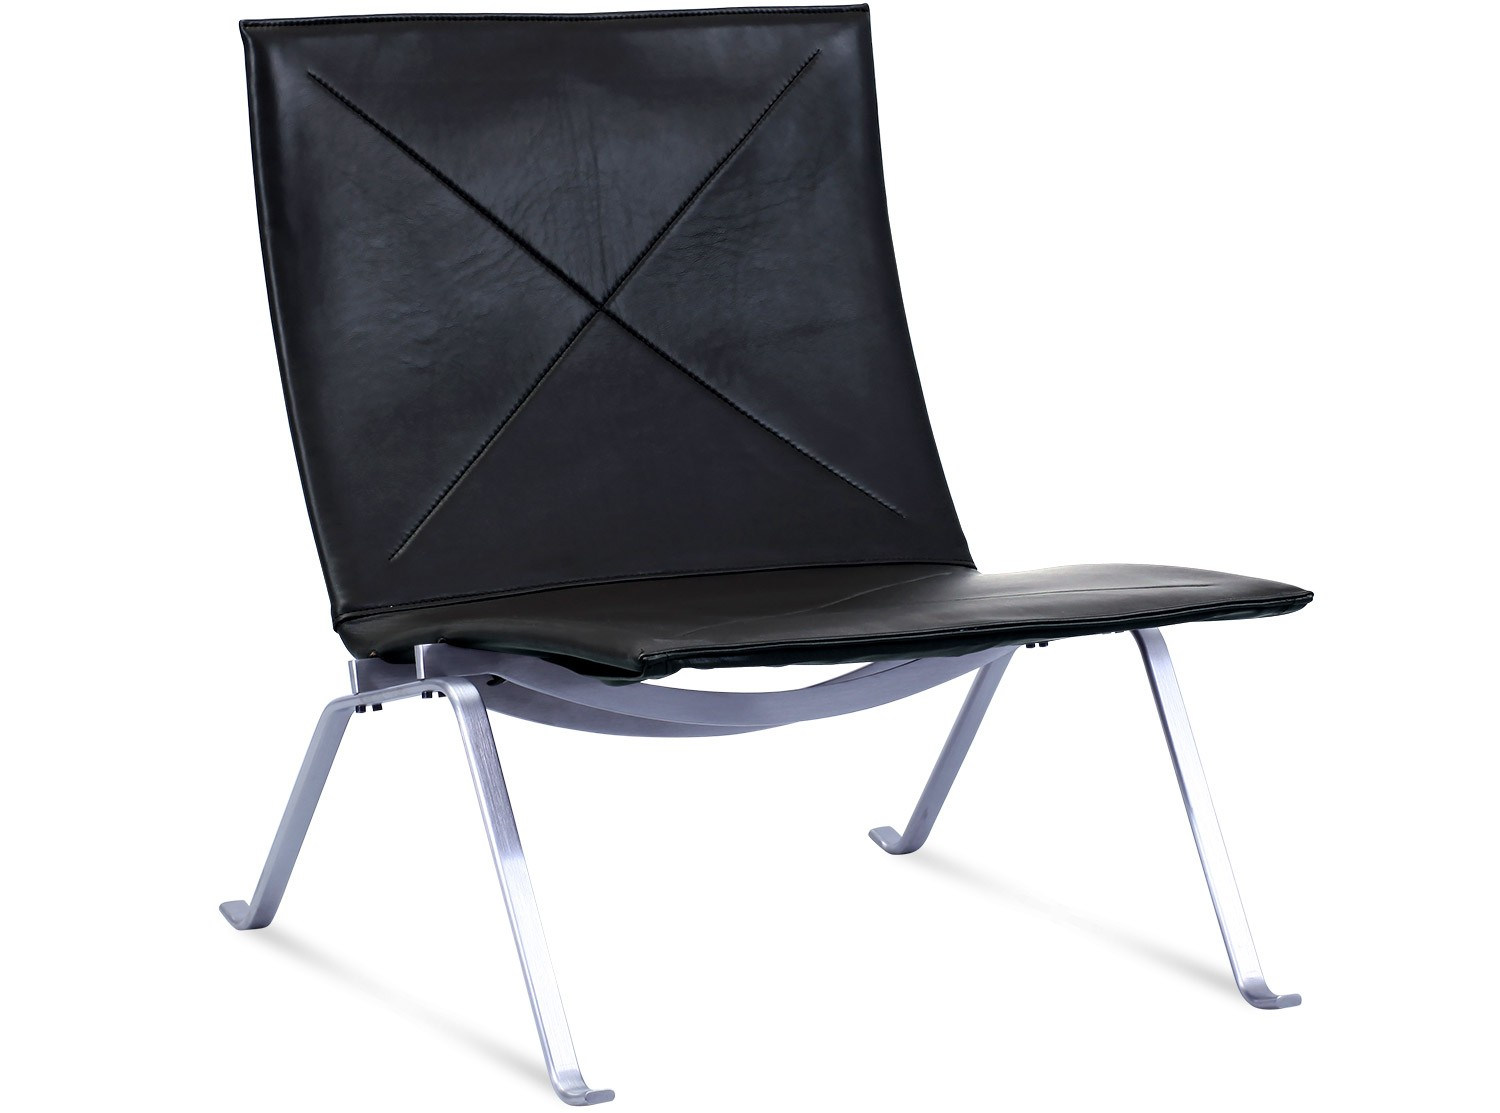 Pk22 Chair Pk22 Lounge Chair By Poul Kjaerholm Platinum Replica